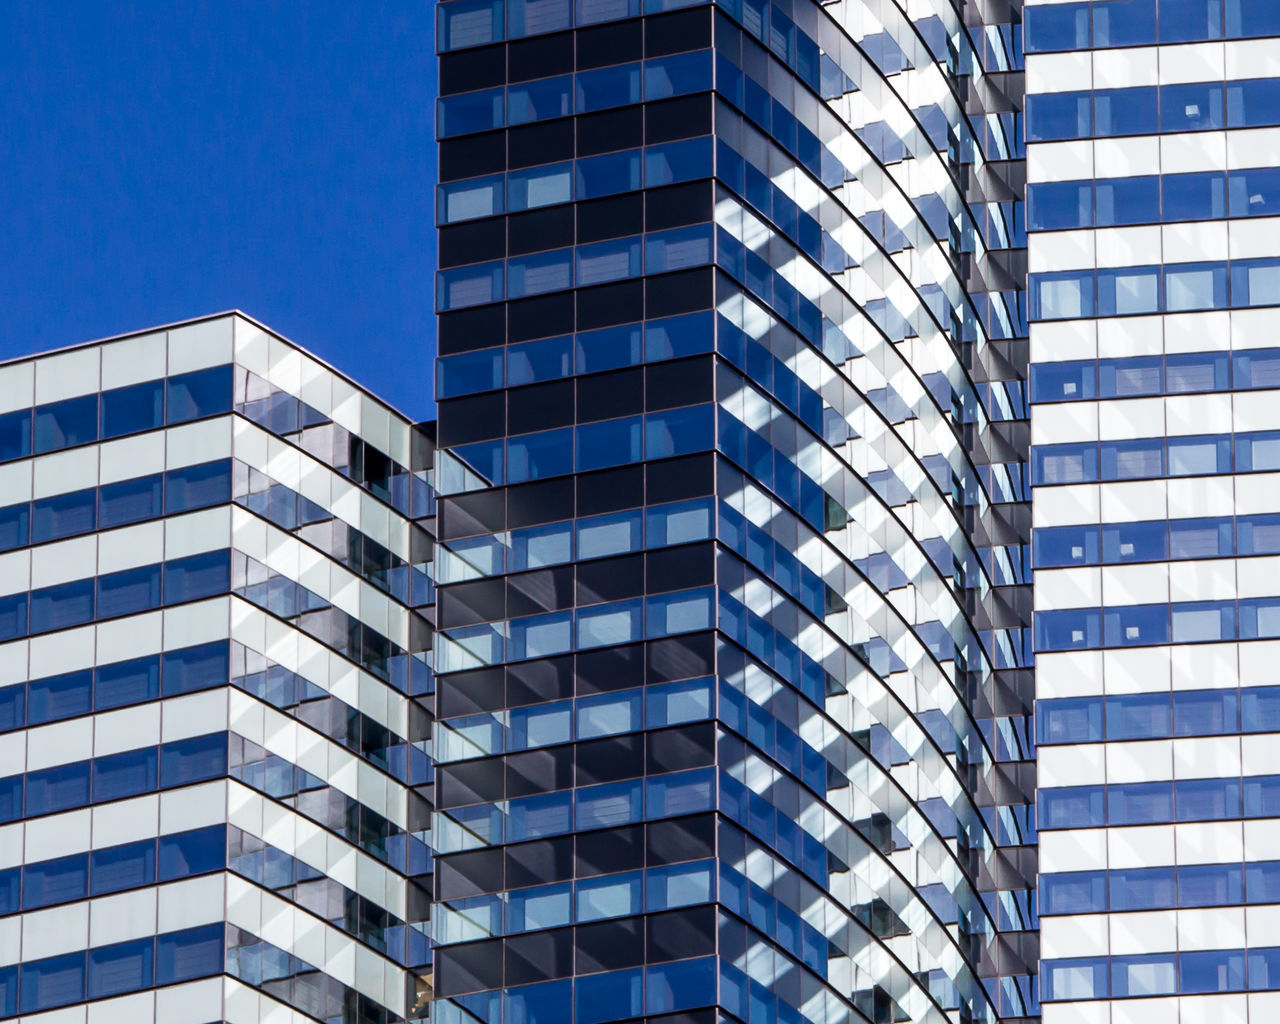 Architecture Backgrounds Building Exterior Built Structure City Clear Sky Day Low Angle View Modern No People Office Block Office Building Exterior Outdoors Reflection Sky Skyscraper Tall Tower